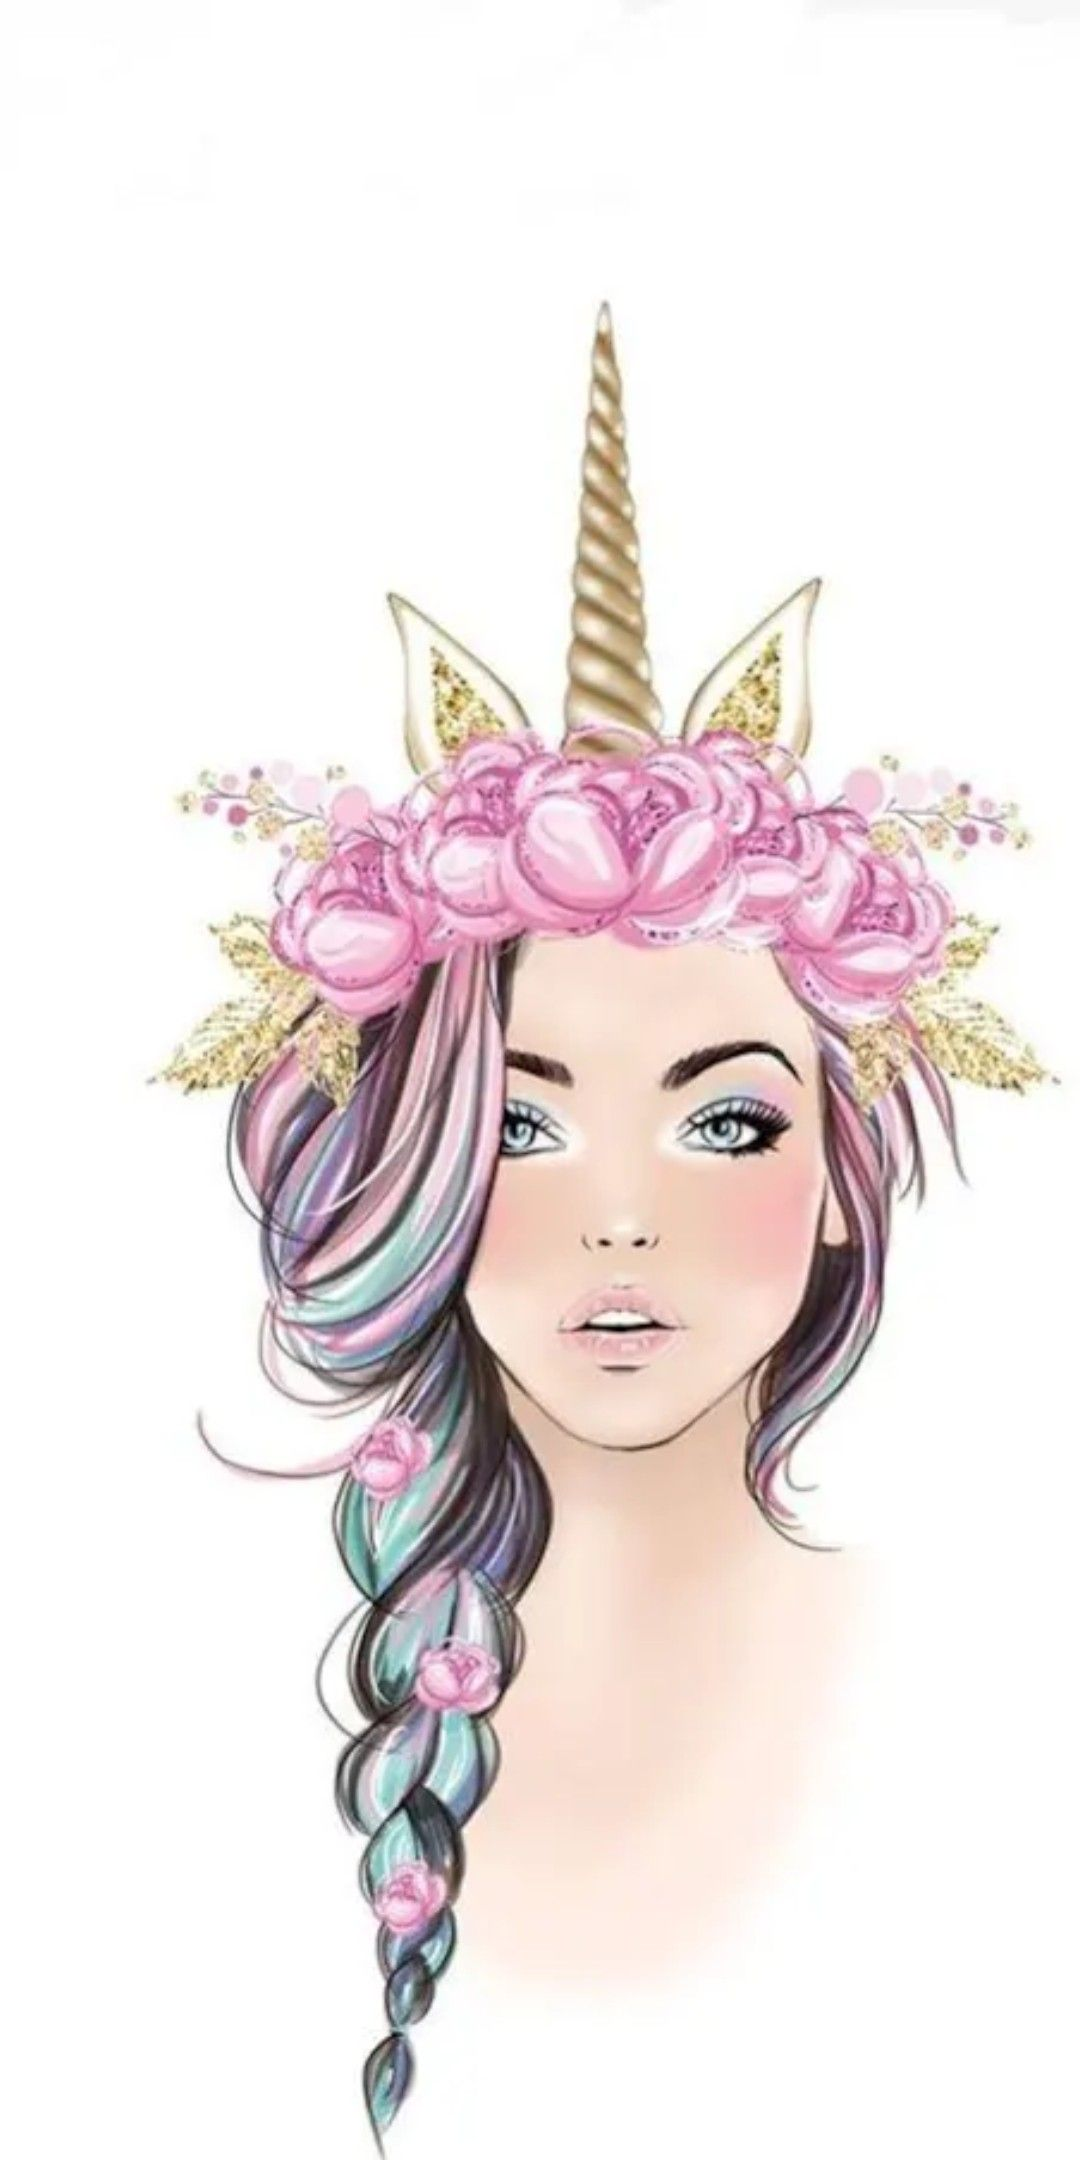 Unicorn Girl Pictures : unicorn, pictures, Unicorn, Girl🦄, Wallpaper, Cute,, Pictures,